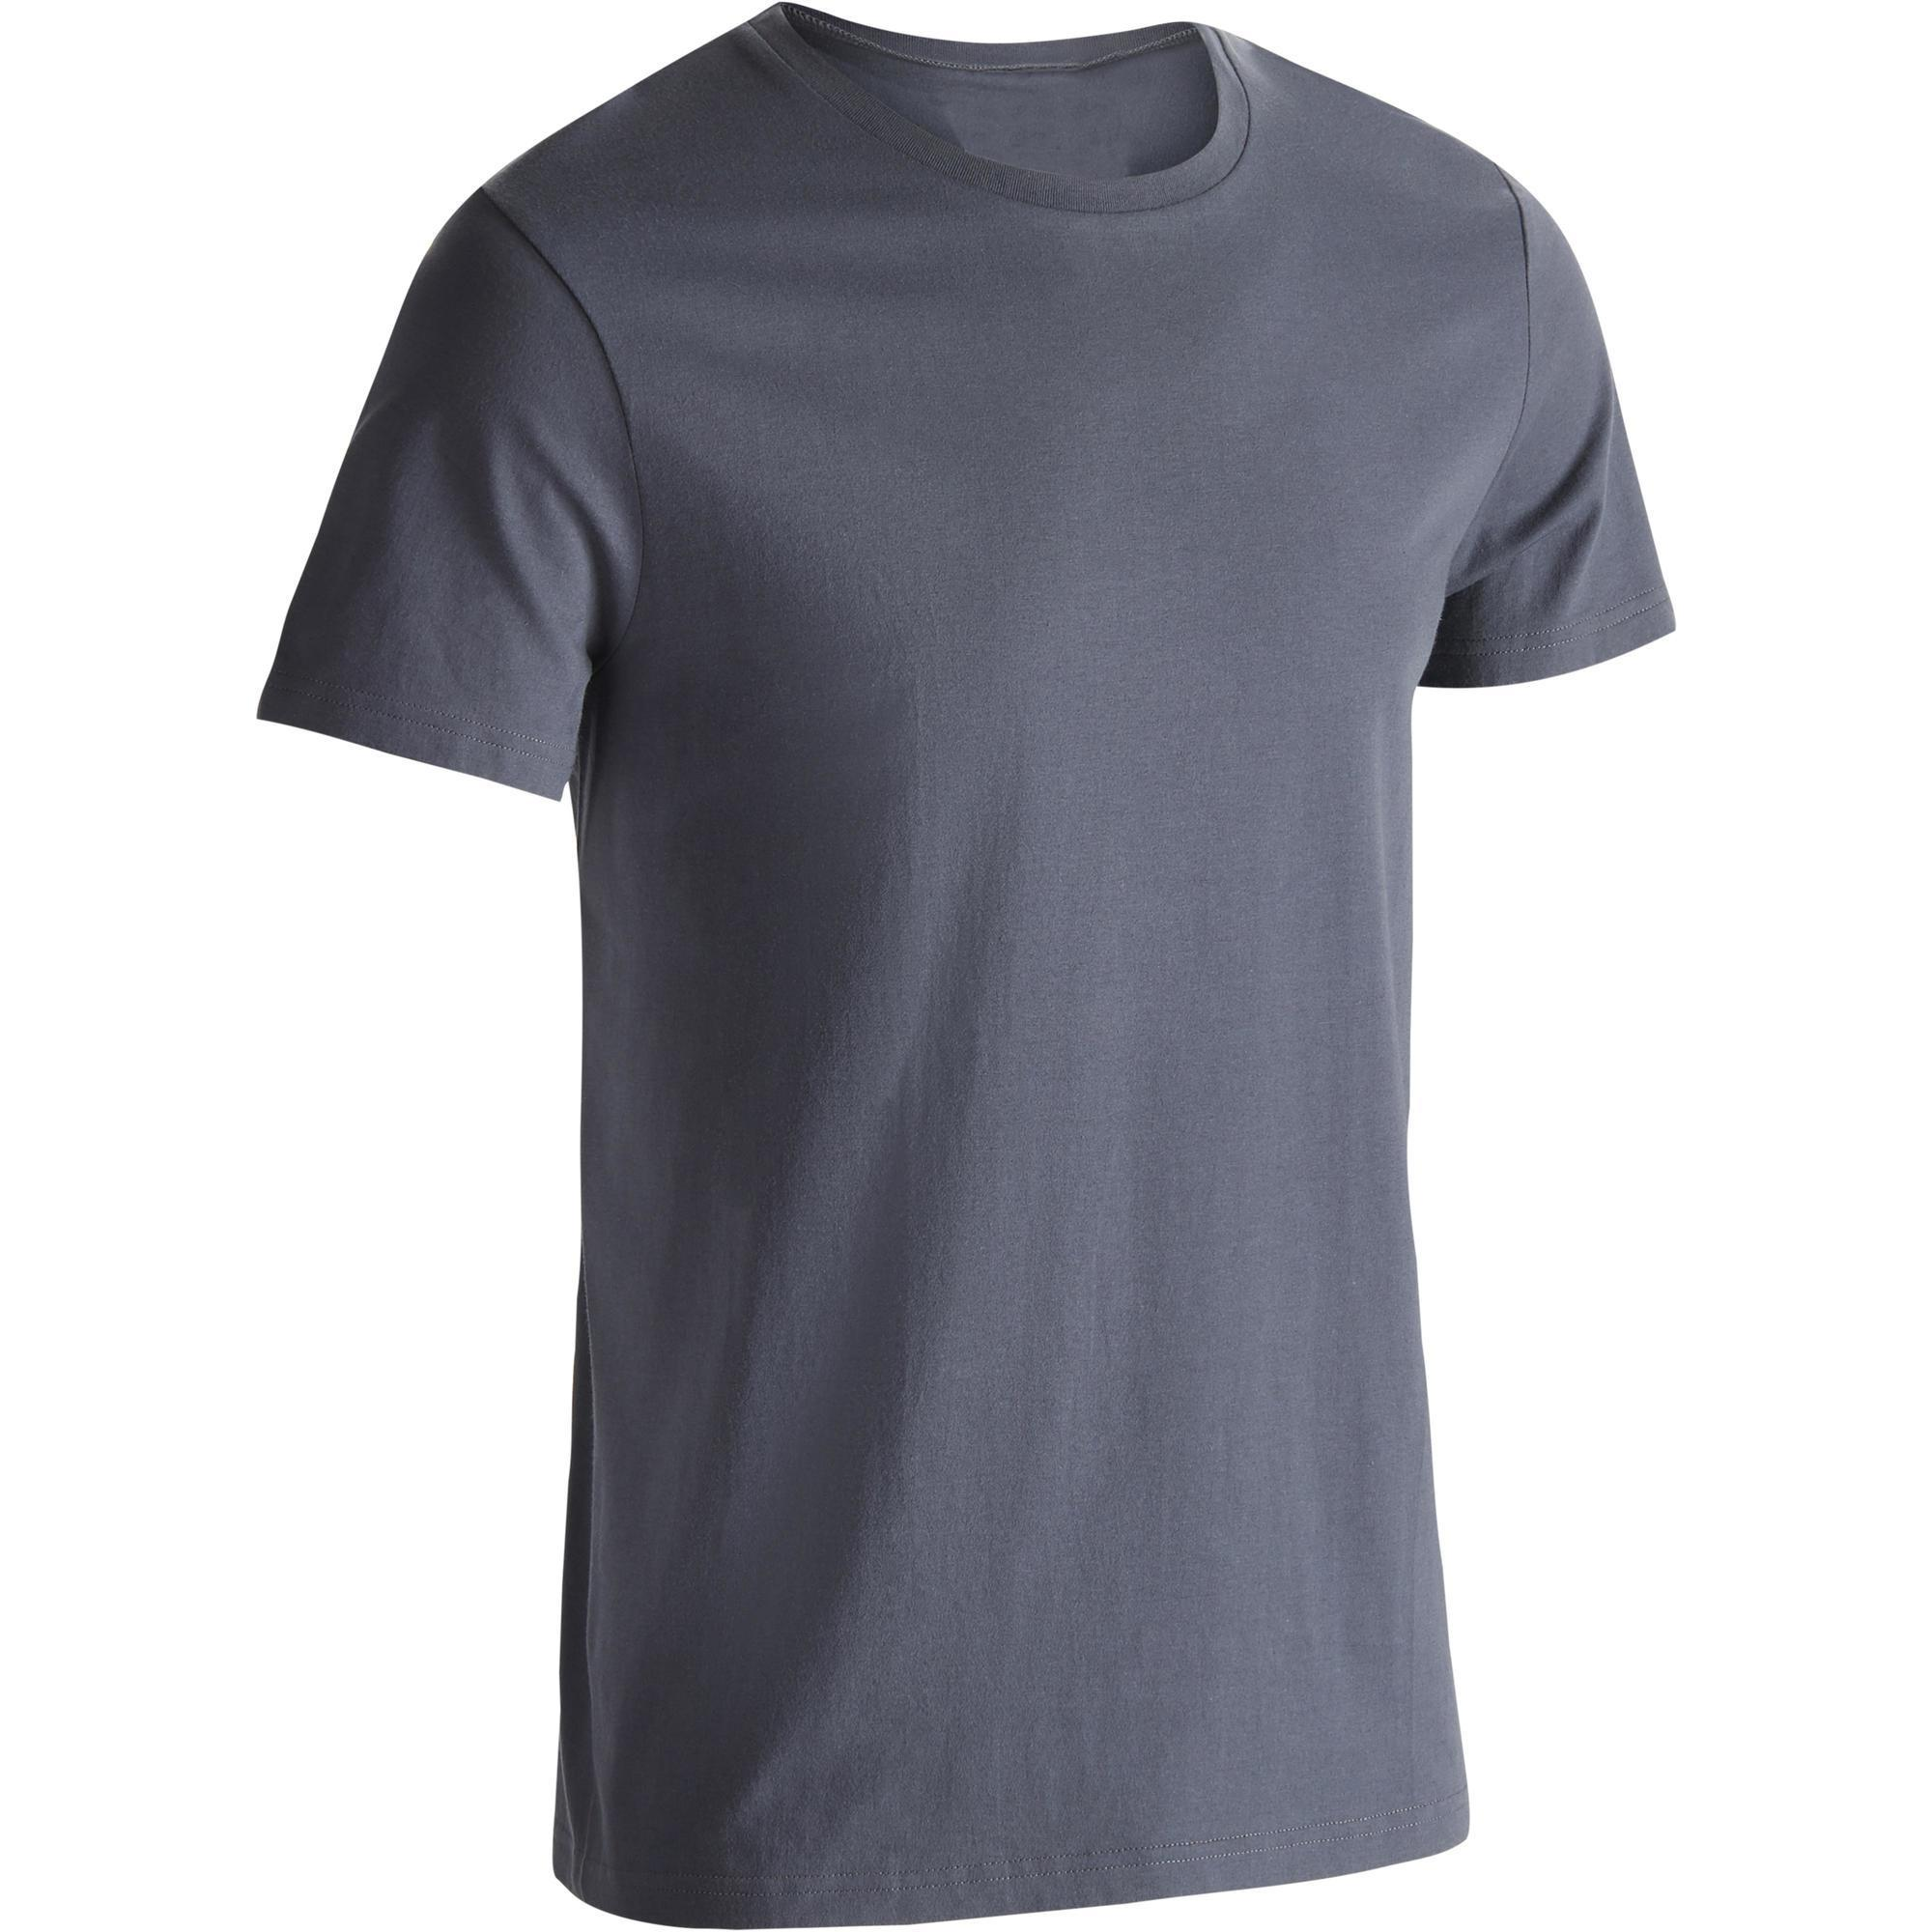 Domyos Heren T-shirt Sportee 100 voor gym en stretching regular fit 100% katoen grijs